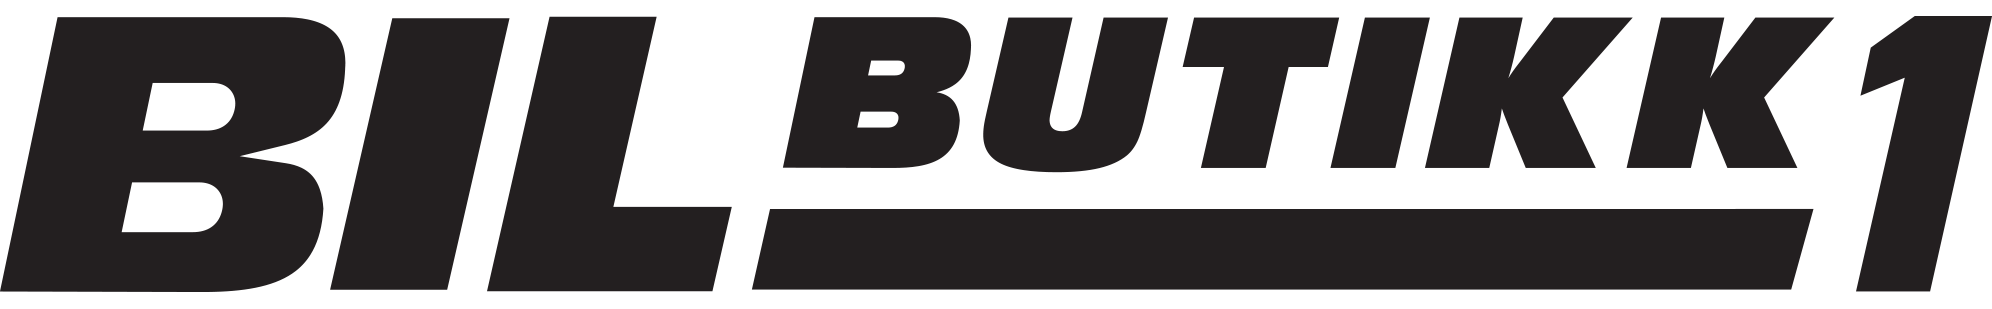 BB1_logo_sort.png